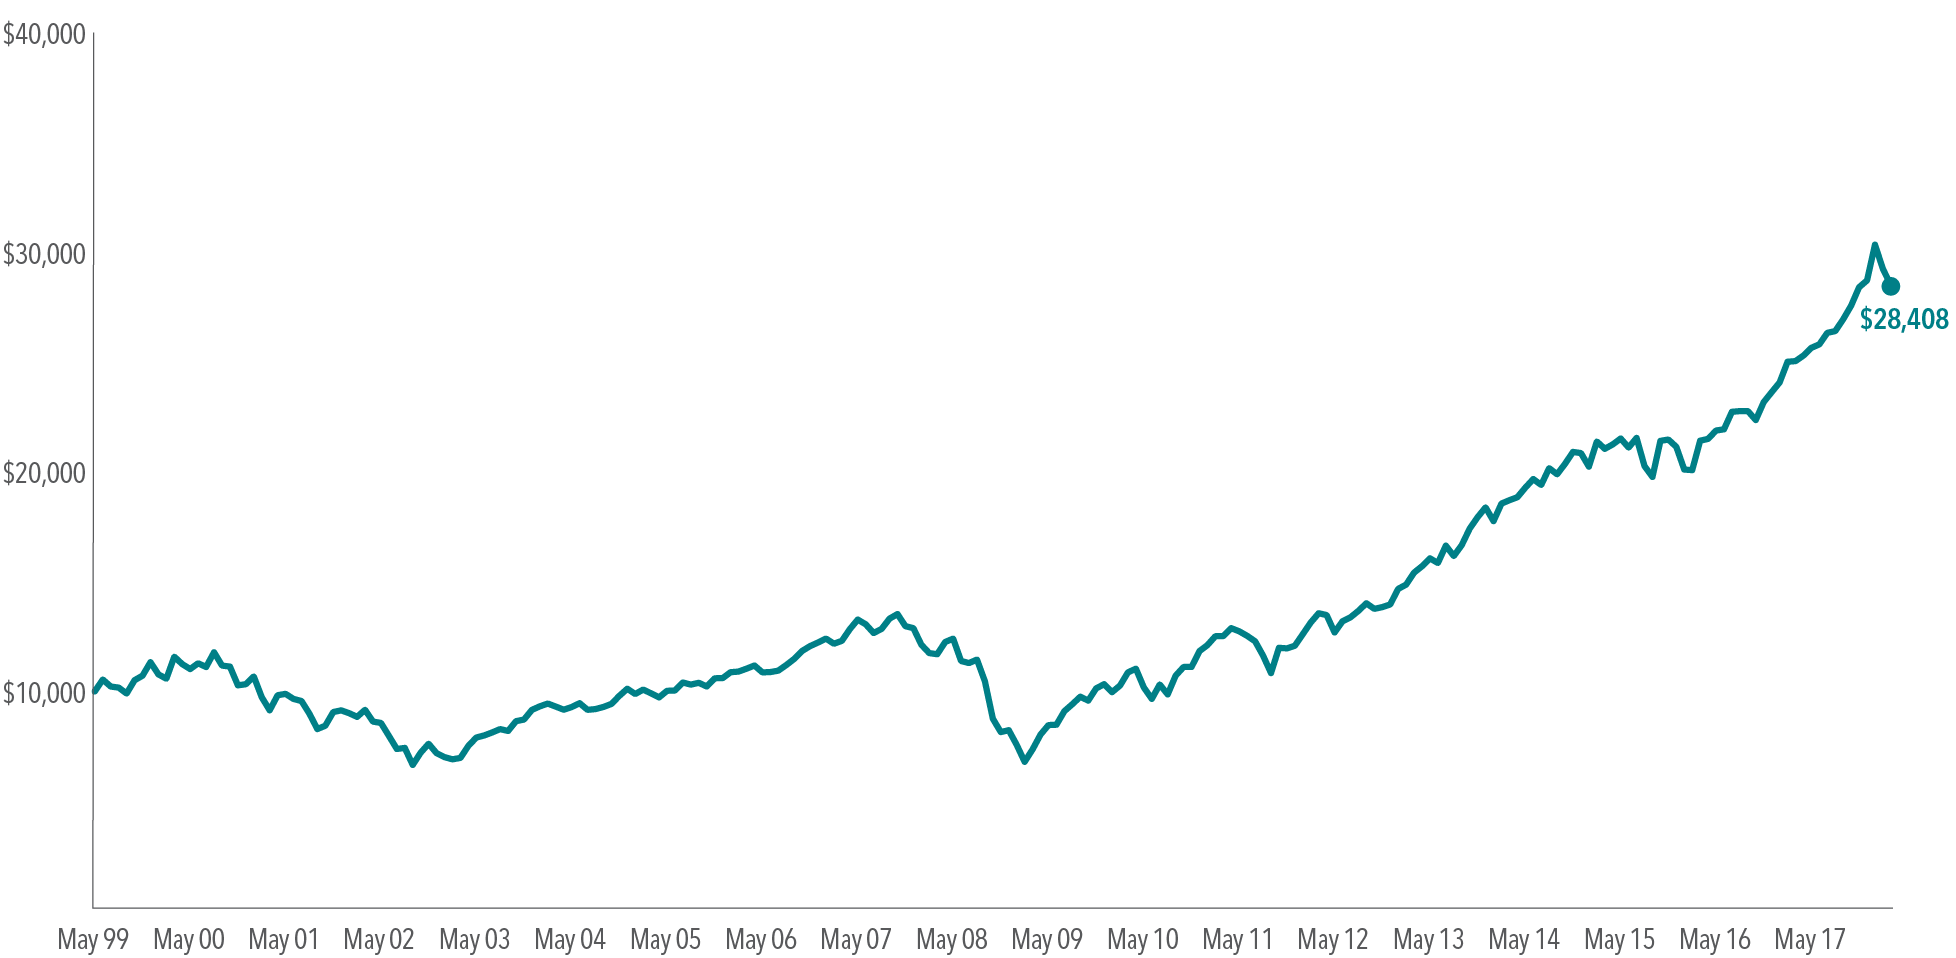 Exhibit 1.   Hypothetical Growth of Wealth in the S&P 500 Index, May 1999–March 2018     © 2018 S&P Dow Jones Indices LLC, a division of S&P Global. All rights reserved. Not representative of an actual investment. Indices are not available for direct investment; therefore, their performance does not reflect the expenses associated with the management of an actual portfolio